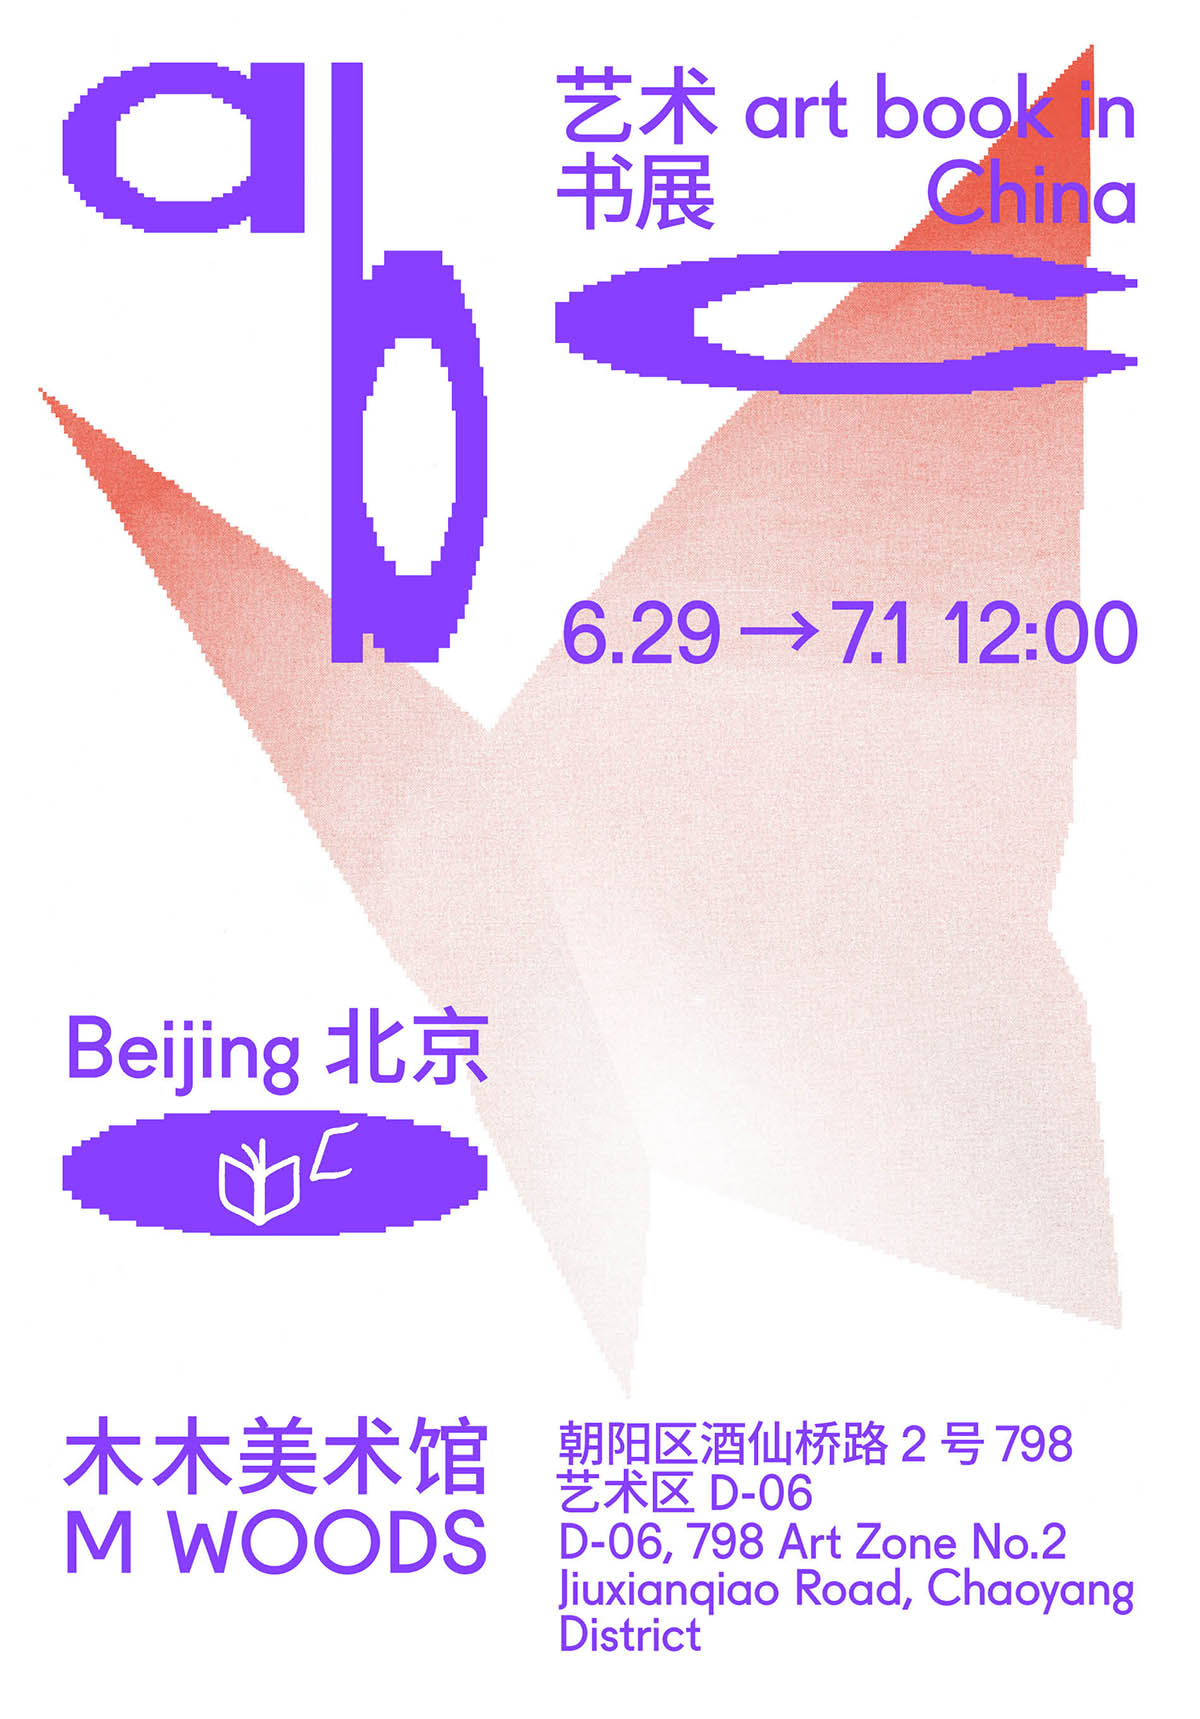 Art book in China poster